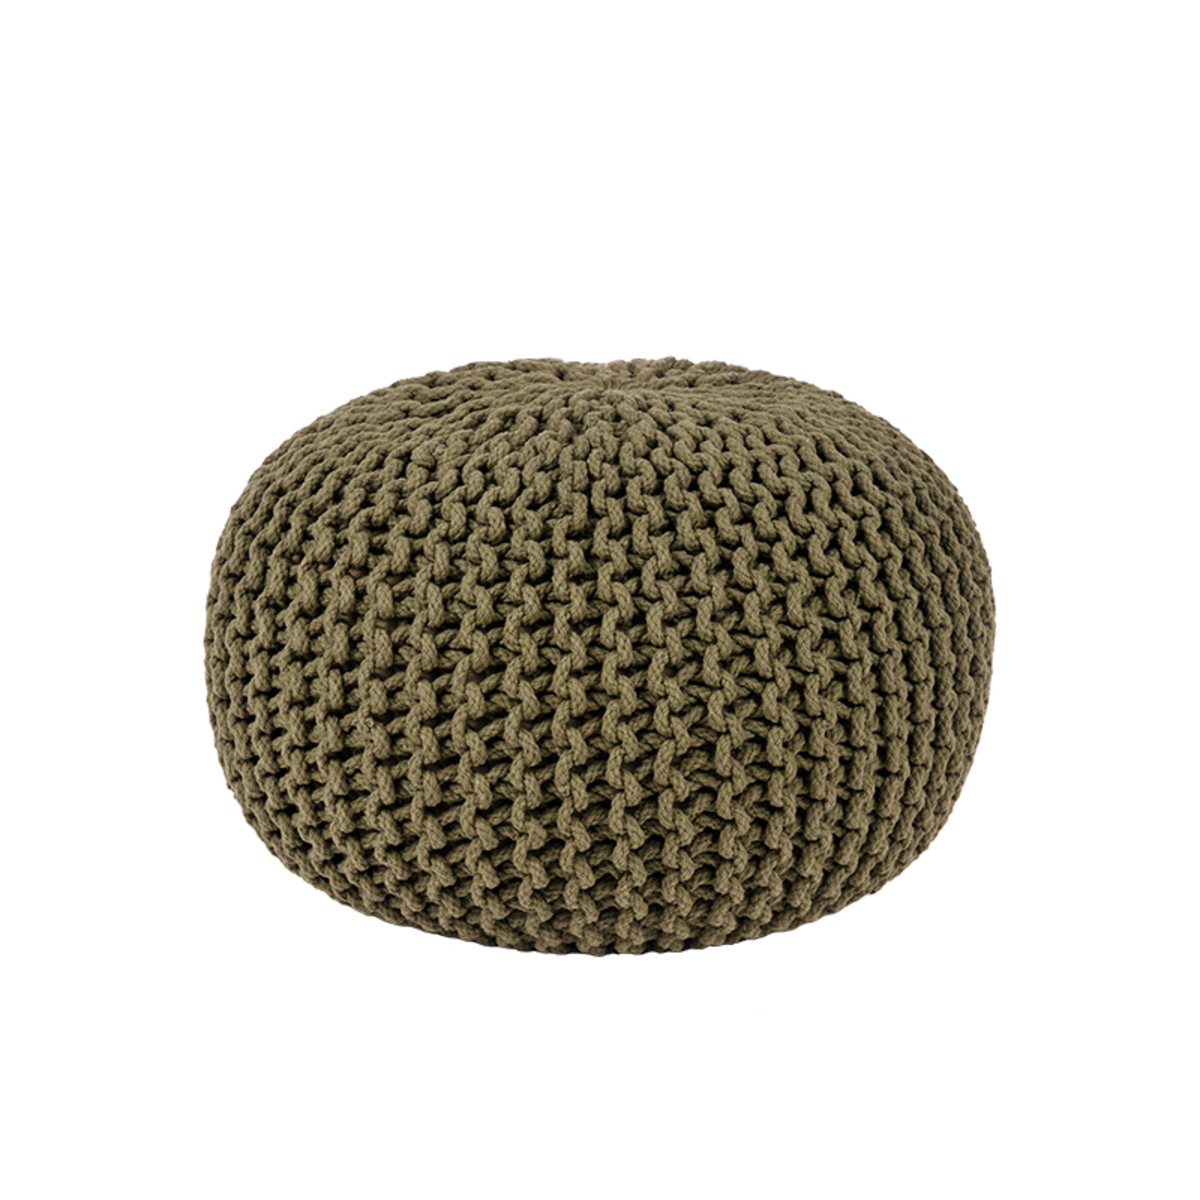 LABEL51 Poef Knitted - Army green - Katoen - M